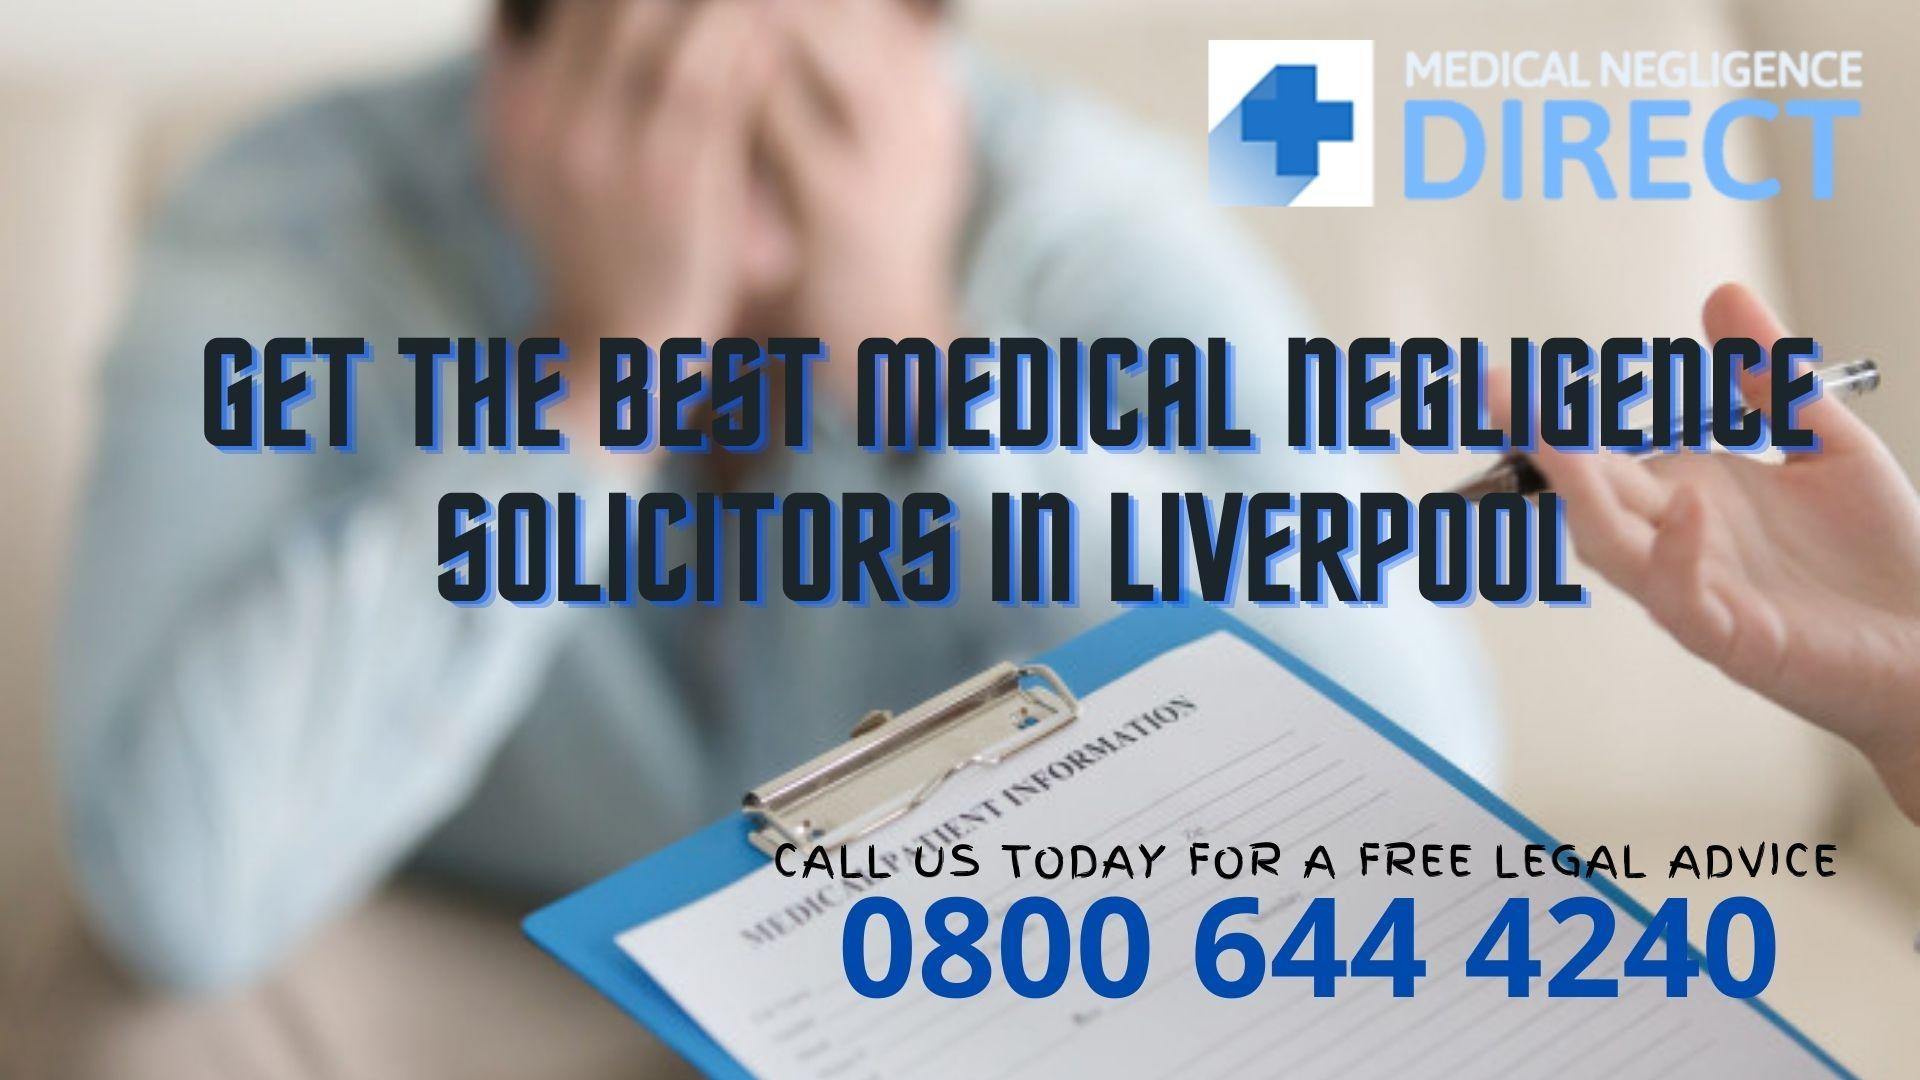 Image - If you have a #MedicalNegligence case and you want to claim against Hospital. Contact Medical Negligence Dire...